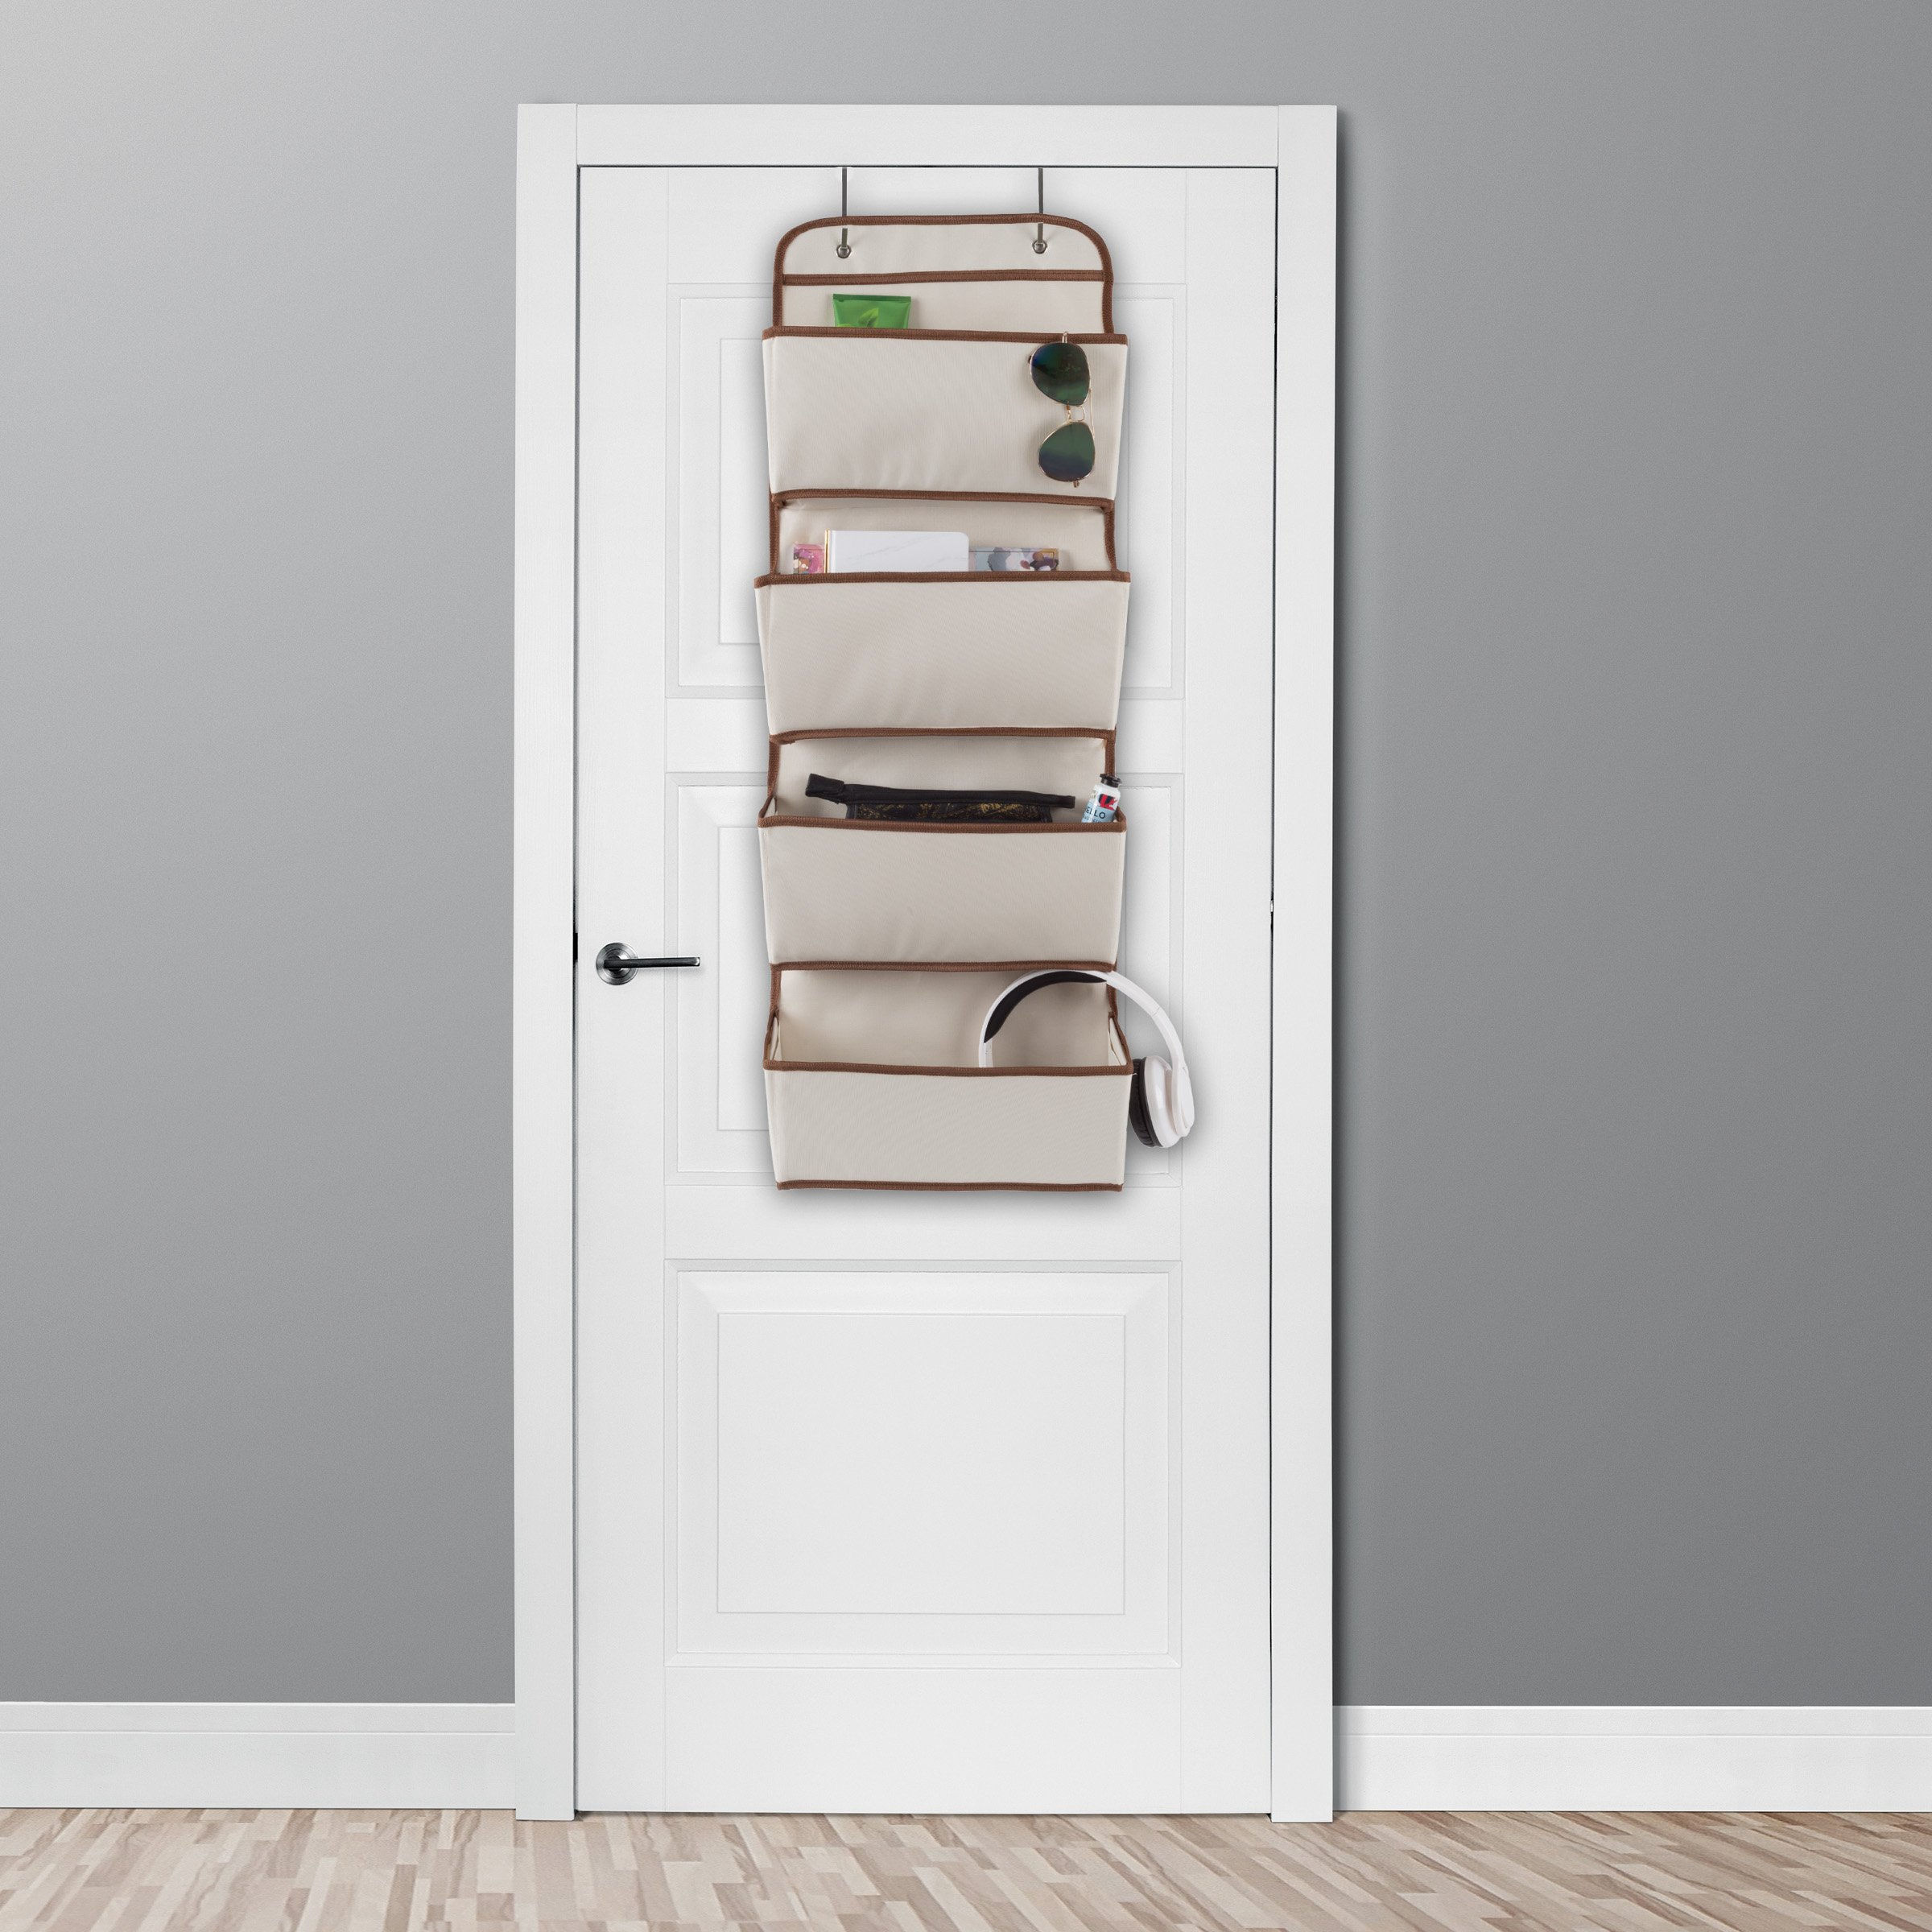 Lavish Home Over The Door Organizer-4 Pocket Hanging Storage Saves Space for Closet, Bedroom, Office-Store Books, Toys, Craft Supplies and More